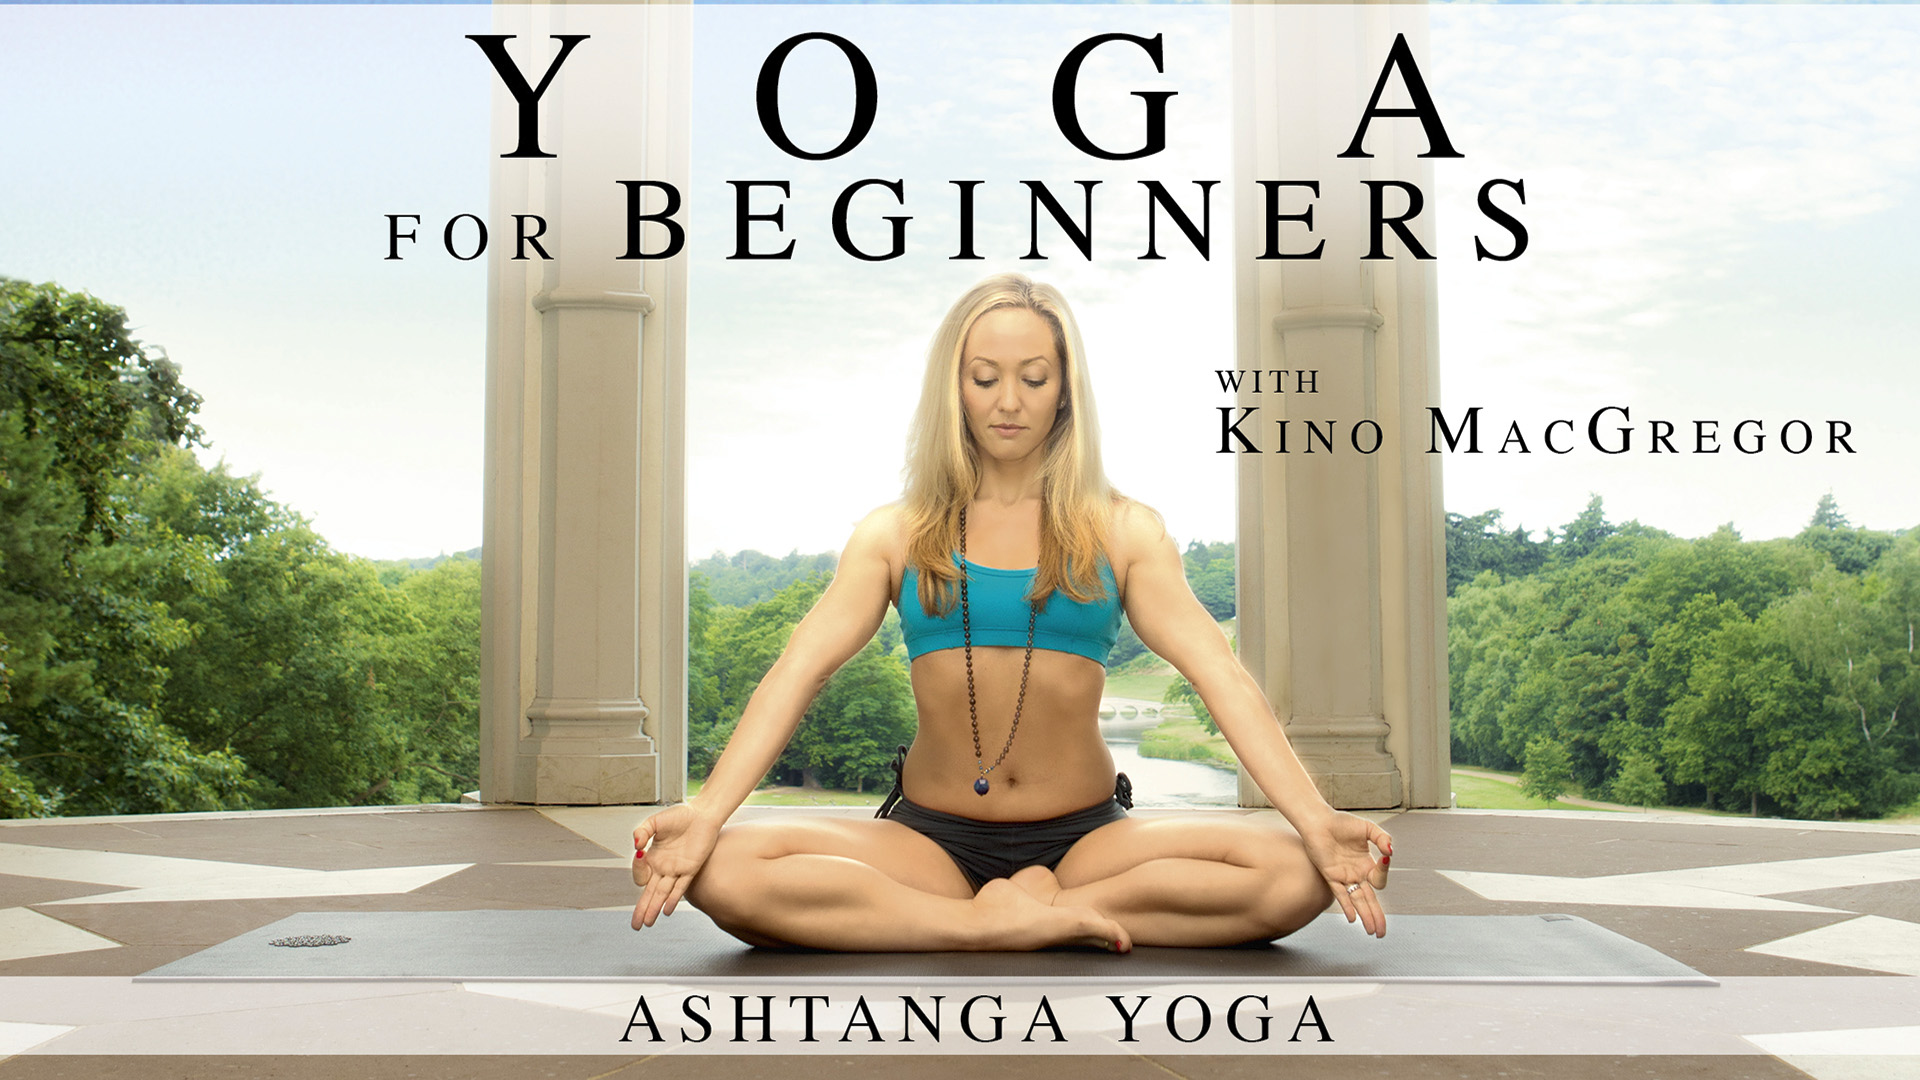 NS14026_KinoMcGregor_YogaForBeginners_TV_1920x1080